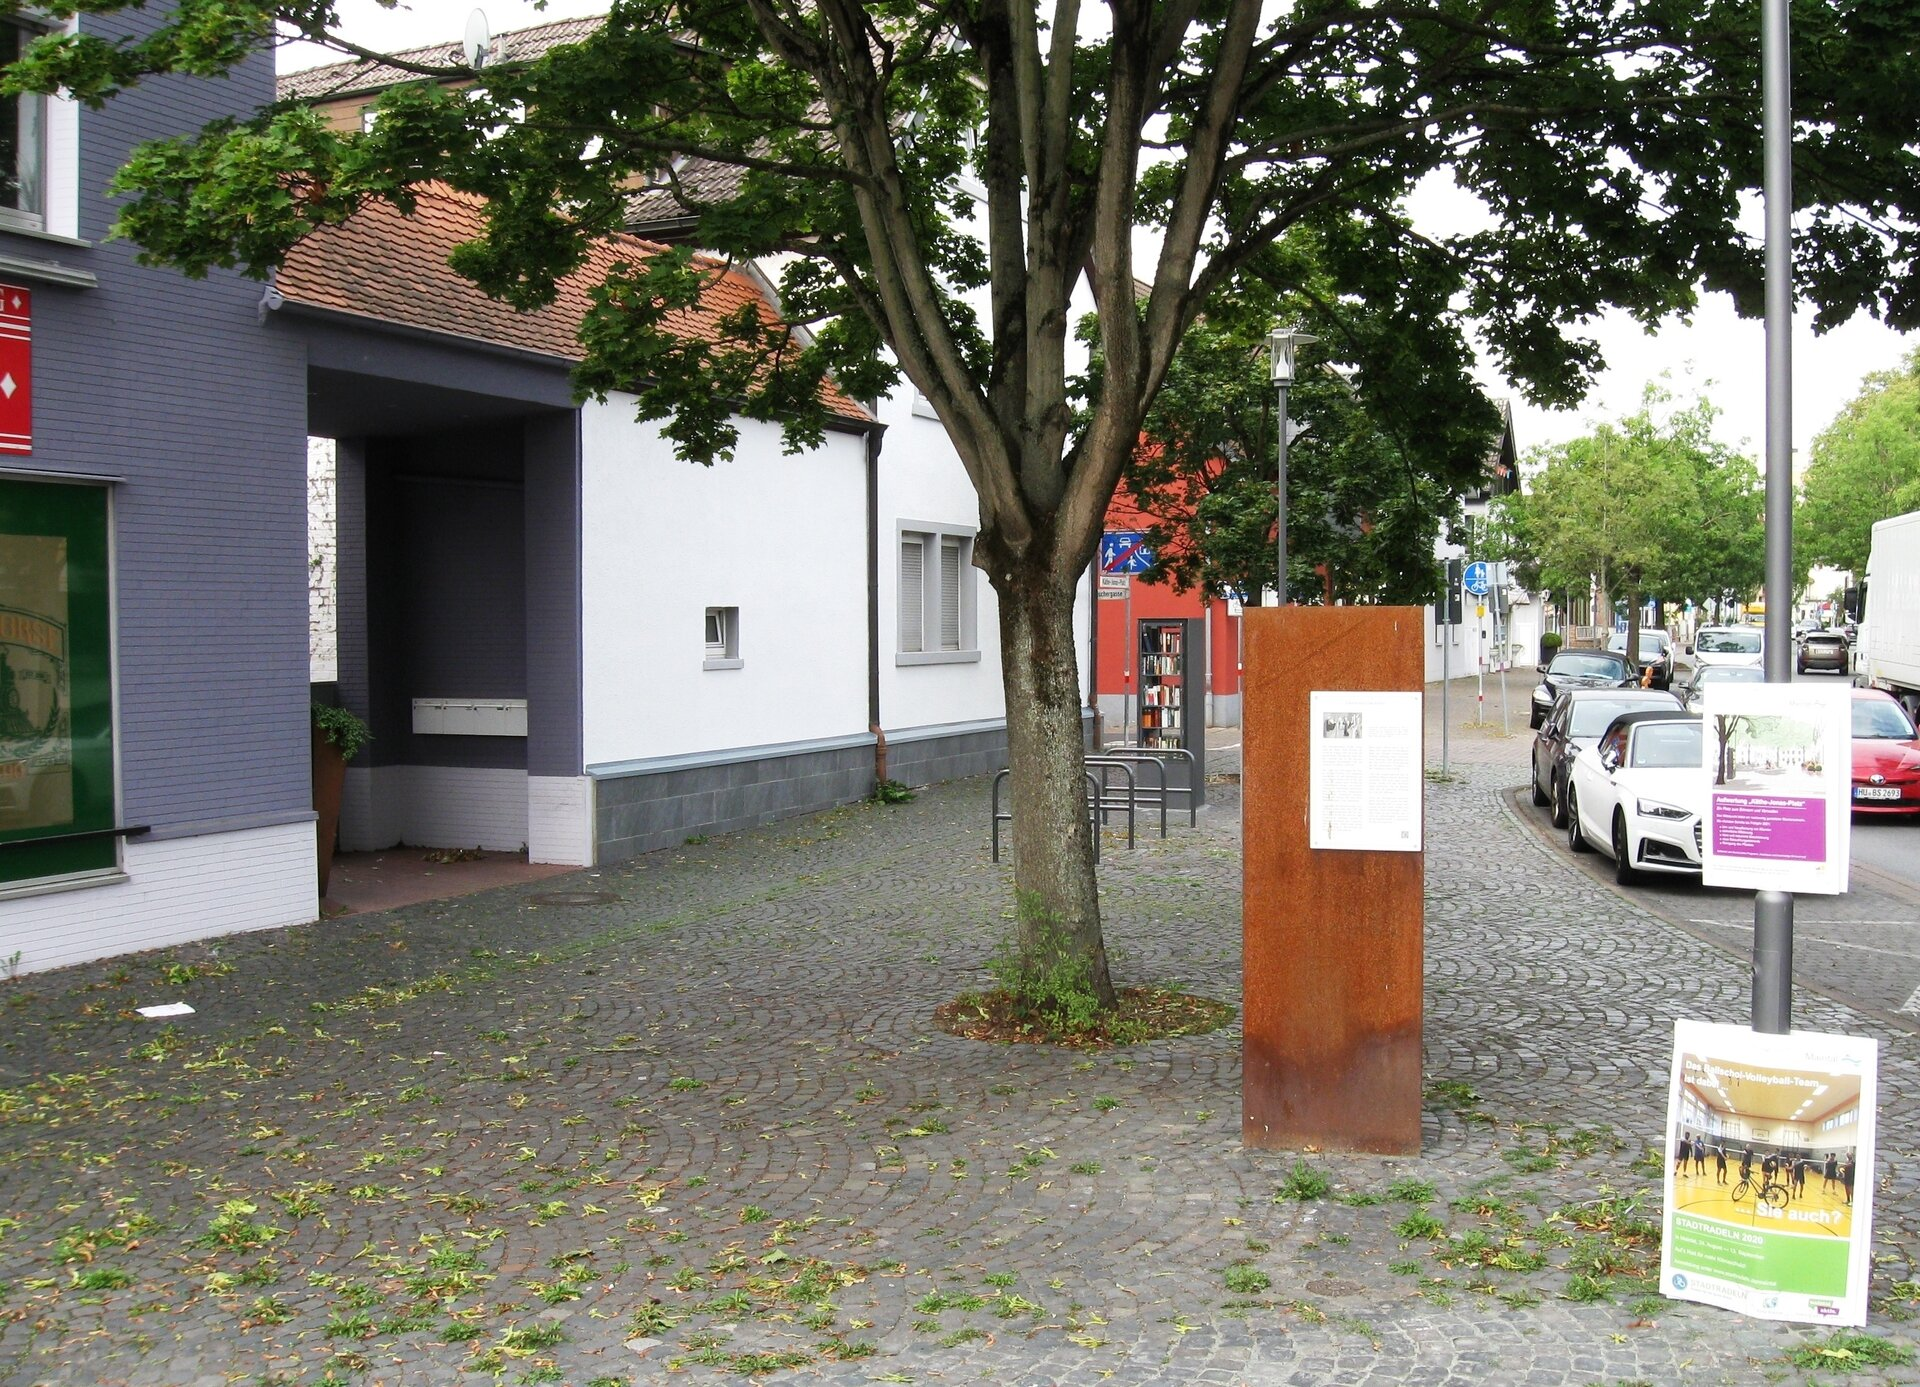 Foto: Stadt Maintal - Käthe-Jonas-Platz in Maintal Dörngiheim